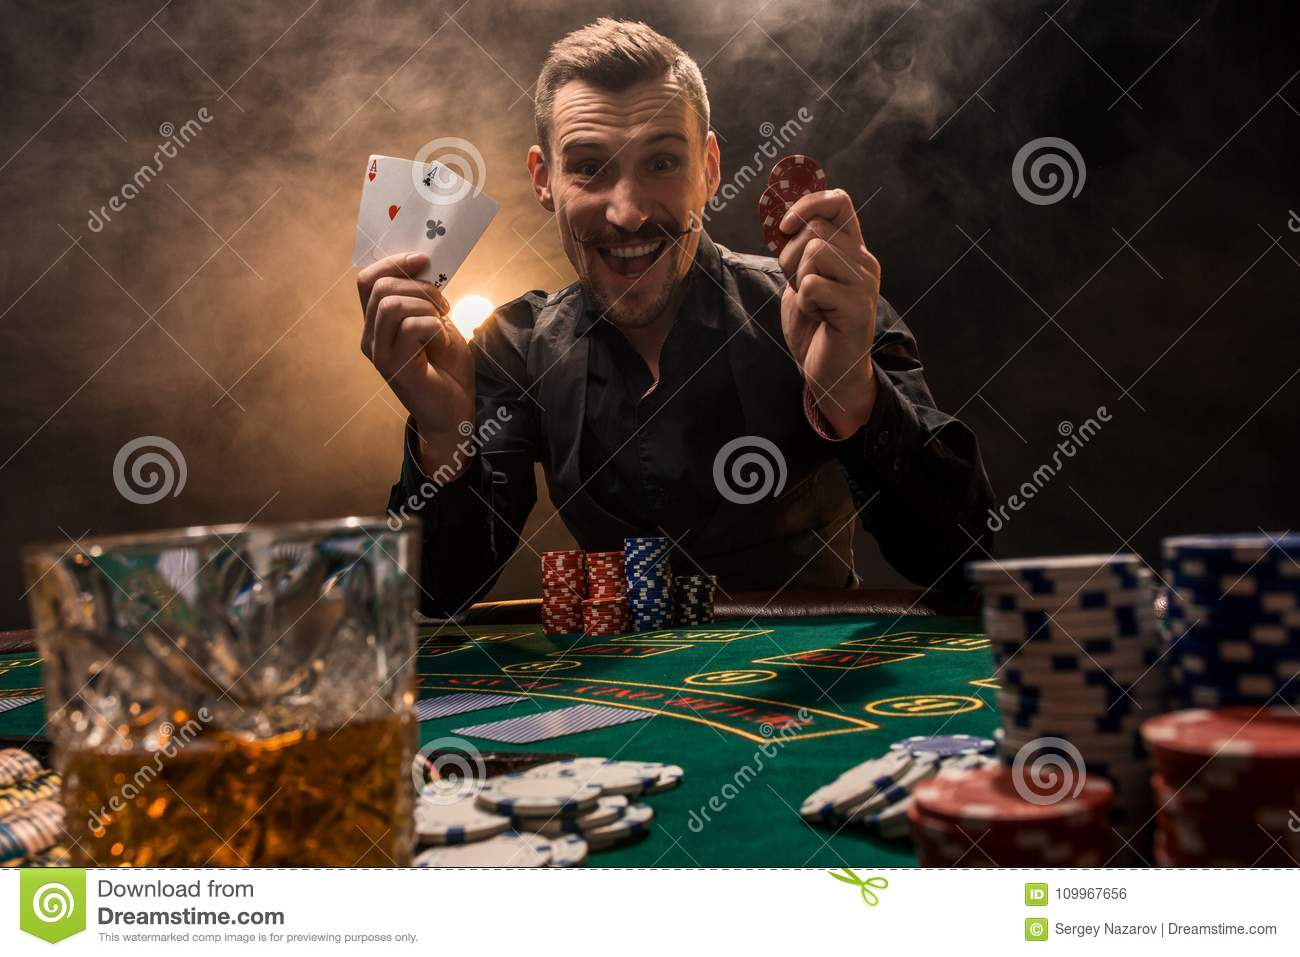 Handsome poker player with two aces in his hands and chips sitting at poker table in a dark room full of cigarette smoke